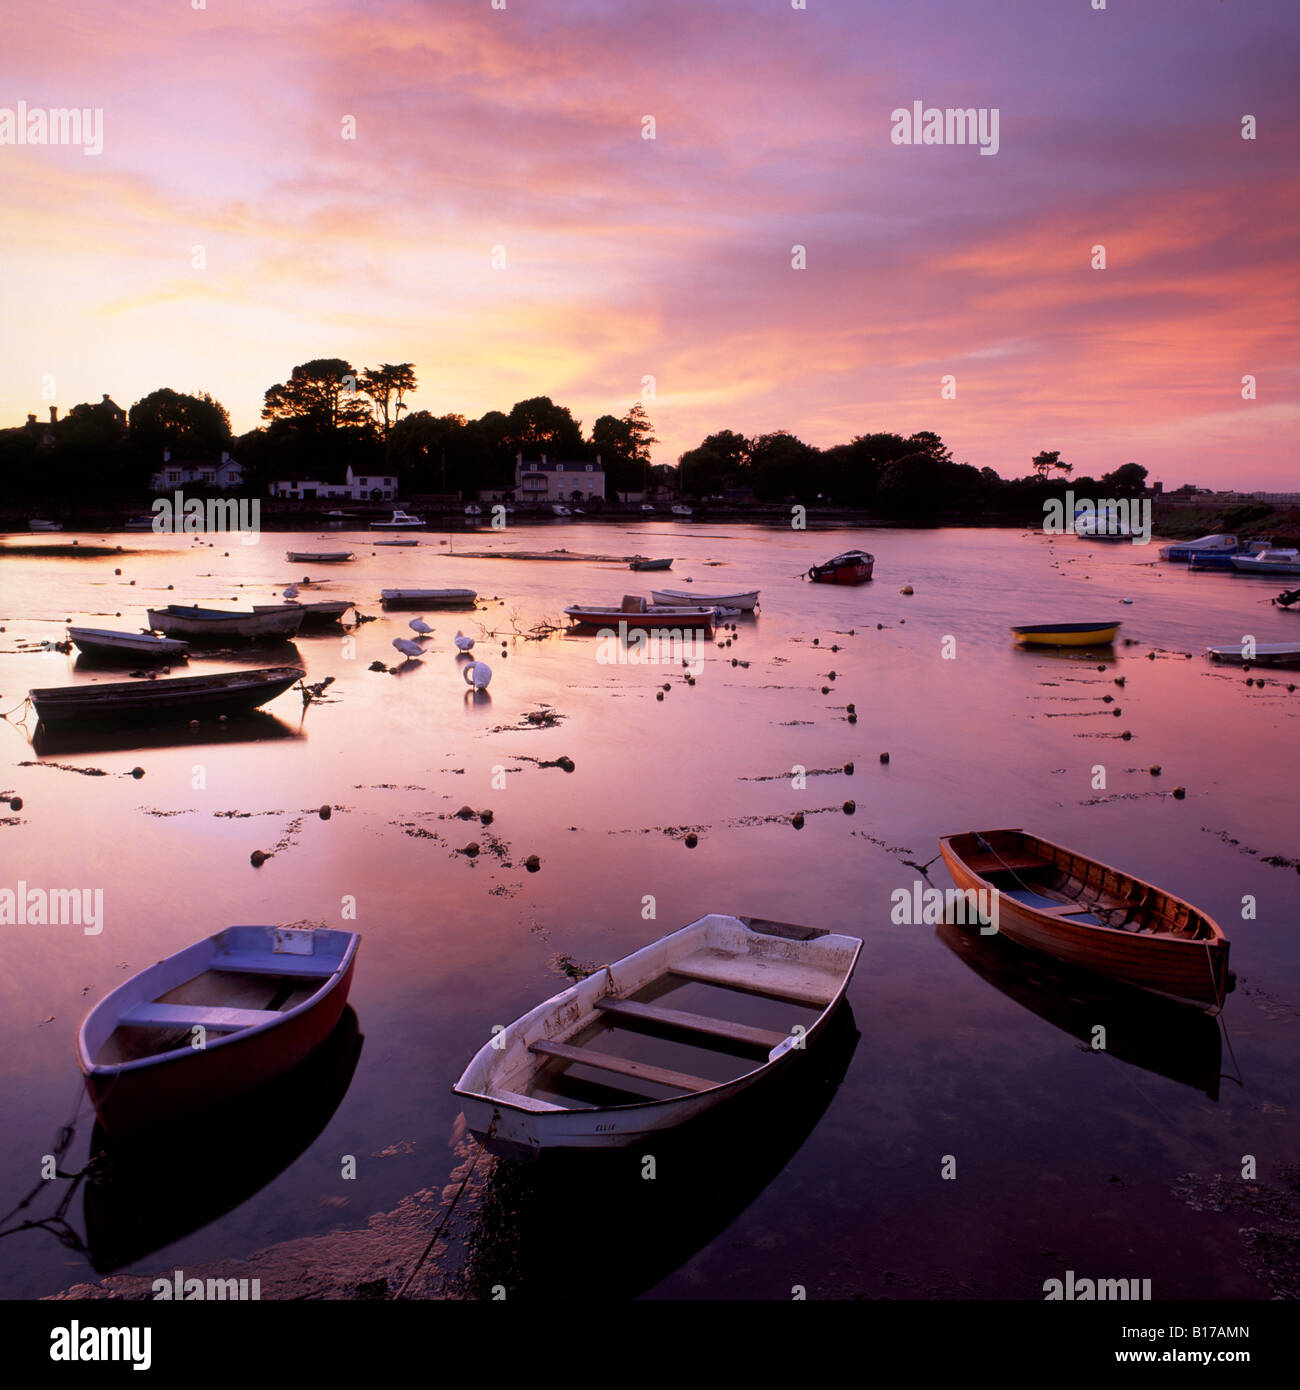 View of a beautiful sunset across Cockwood Harbour, Devon, UK with boats in the foreground - Stock Image